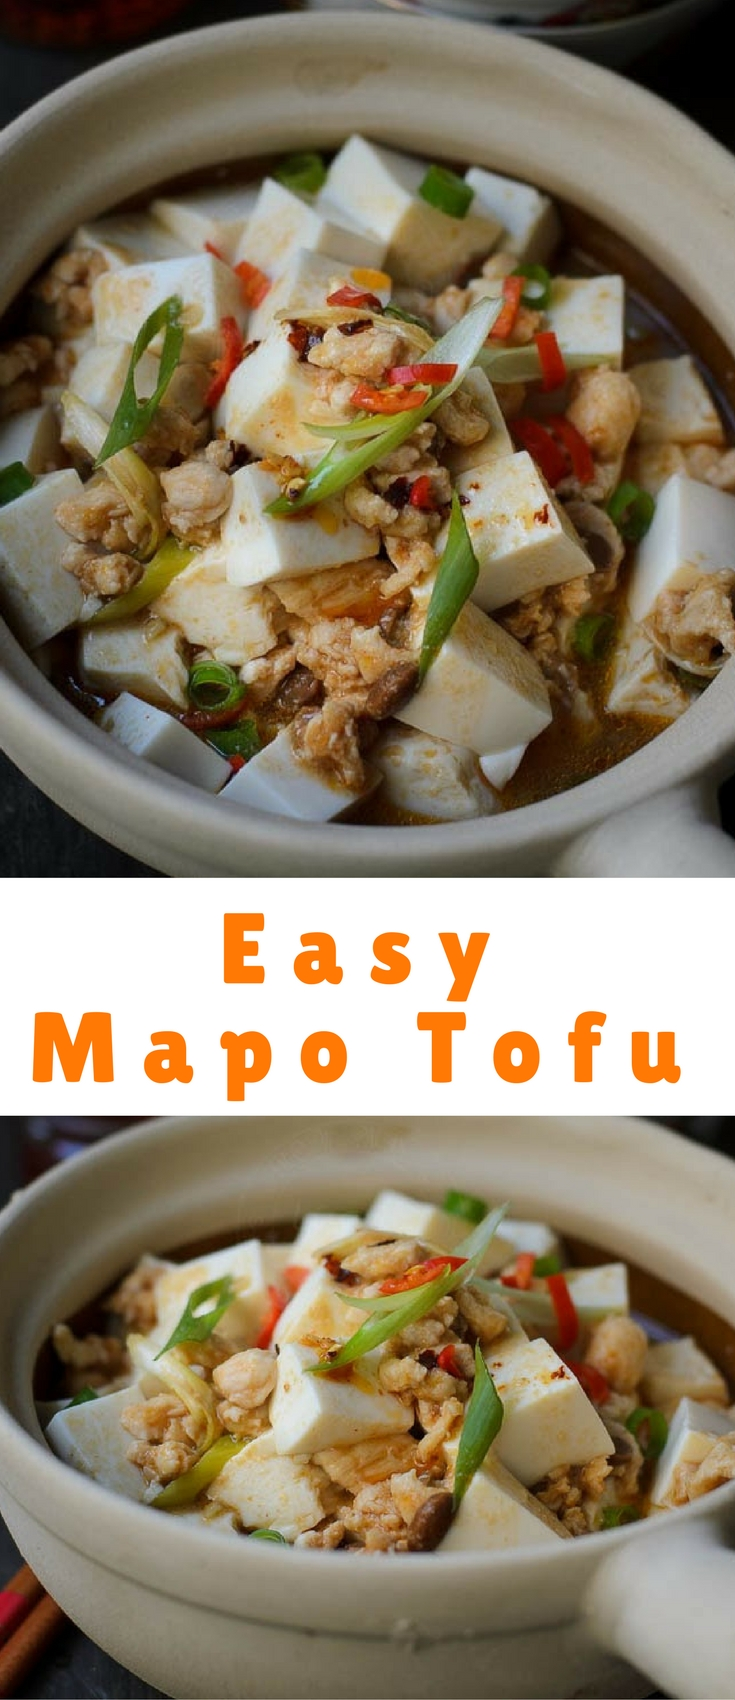 Hot and spicy beancurd or better known as Mapo Tofu.